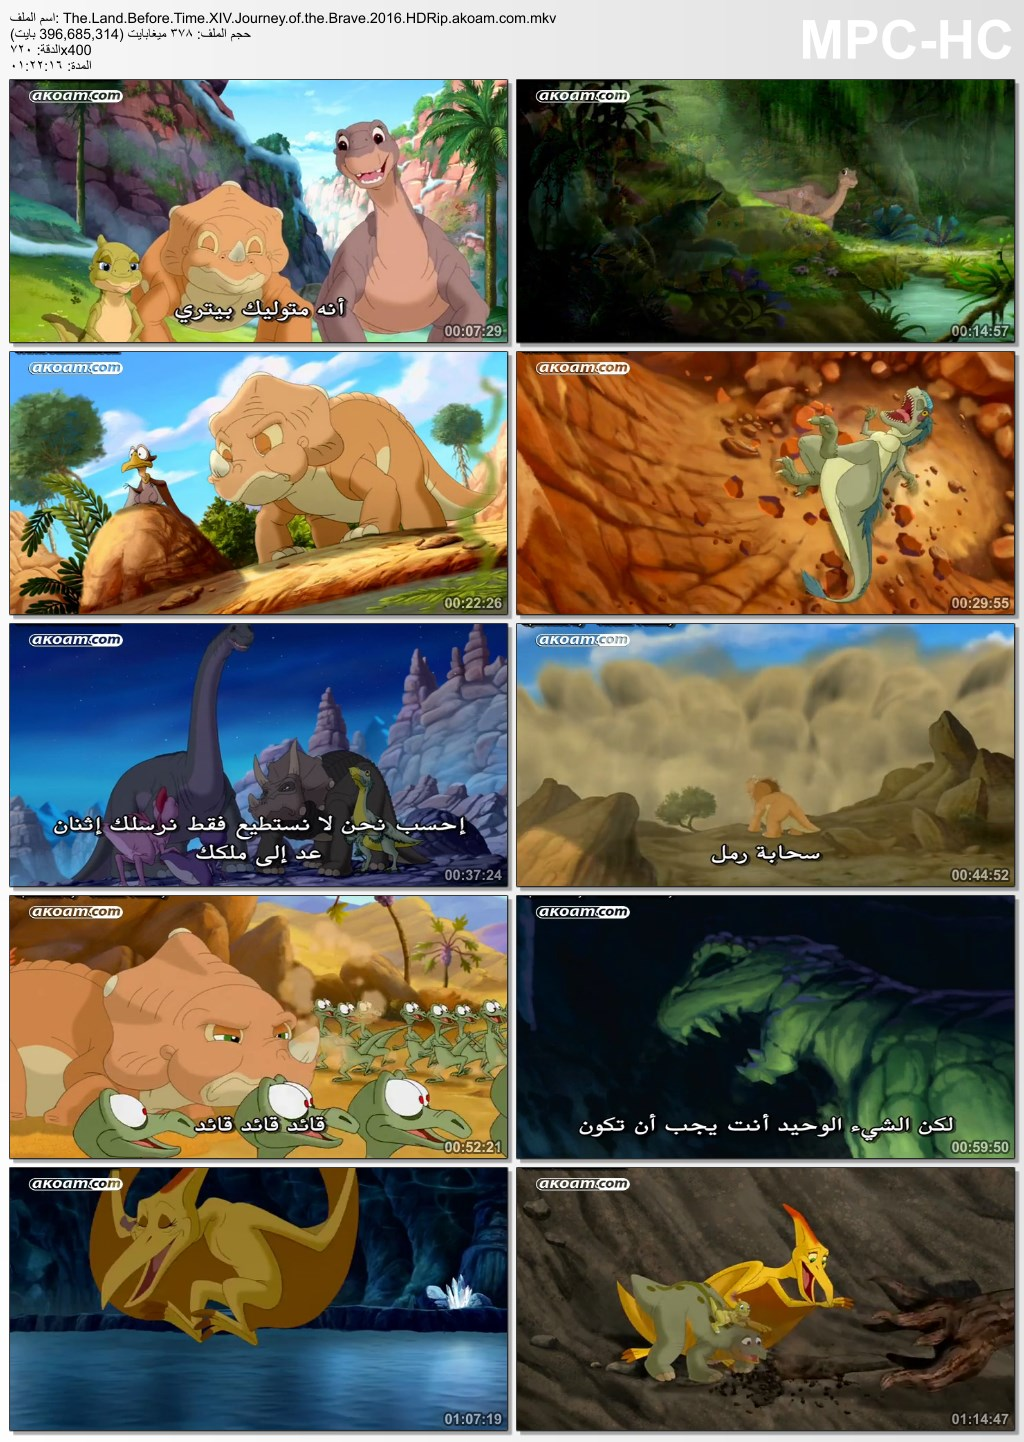 The Land Before Time XIV: Journey of the Brave,The Land Before Time XIV,Journey of the Heart,الانمي,الانيمشين,المغامرات,العائلي